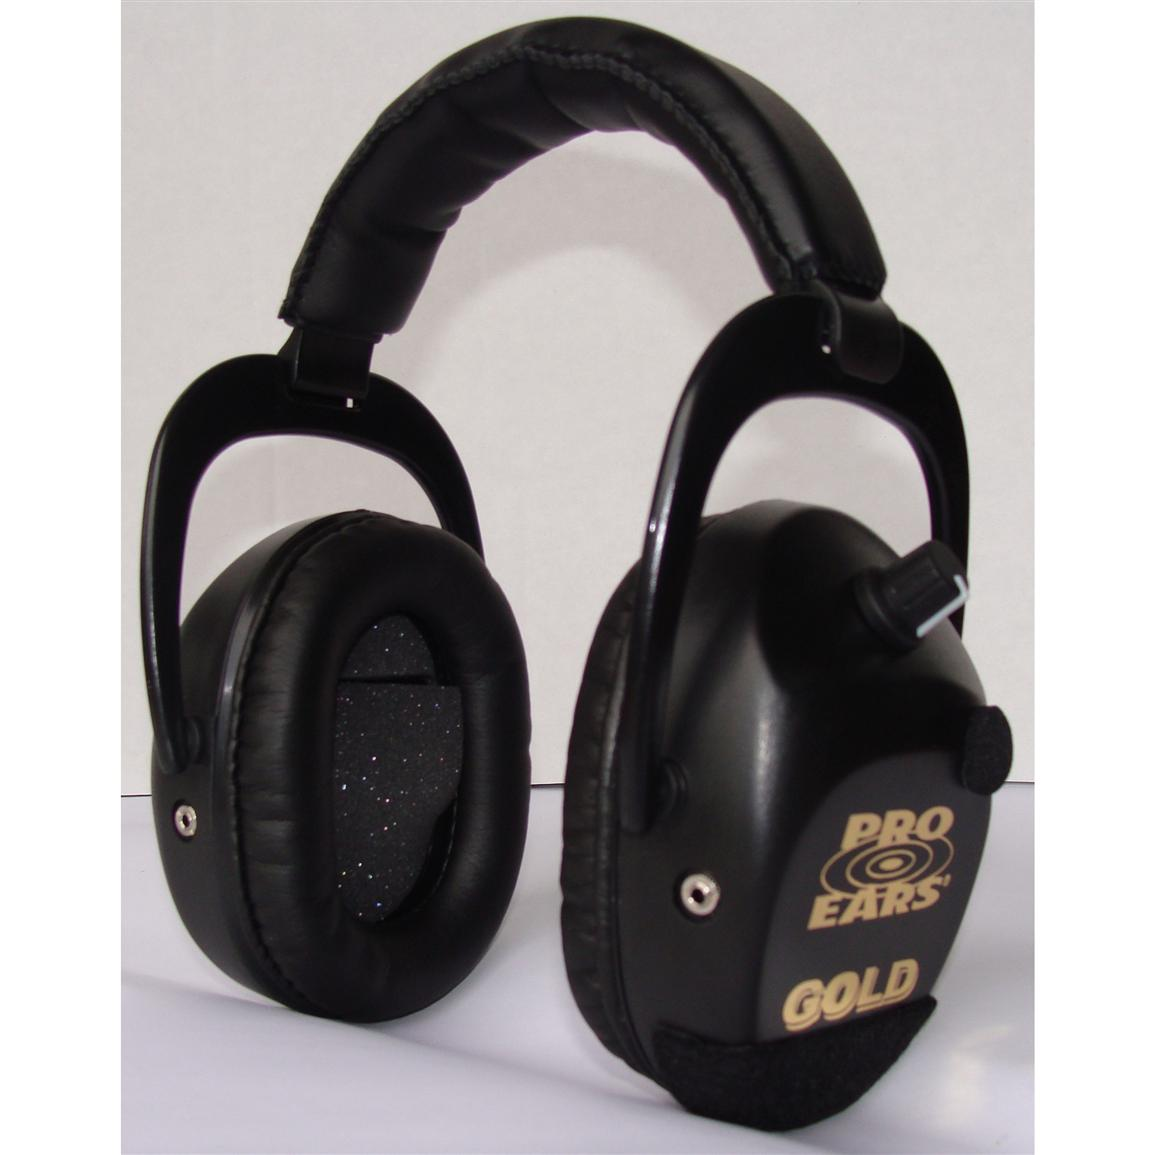 Pro Ears® Sporting Clay Gold Hearing Protection and Amplification Ear Muffs, Black